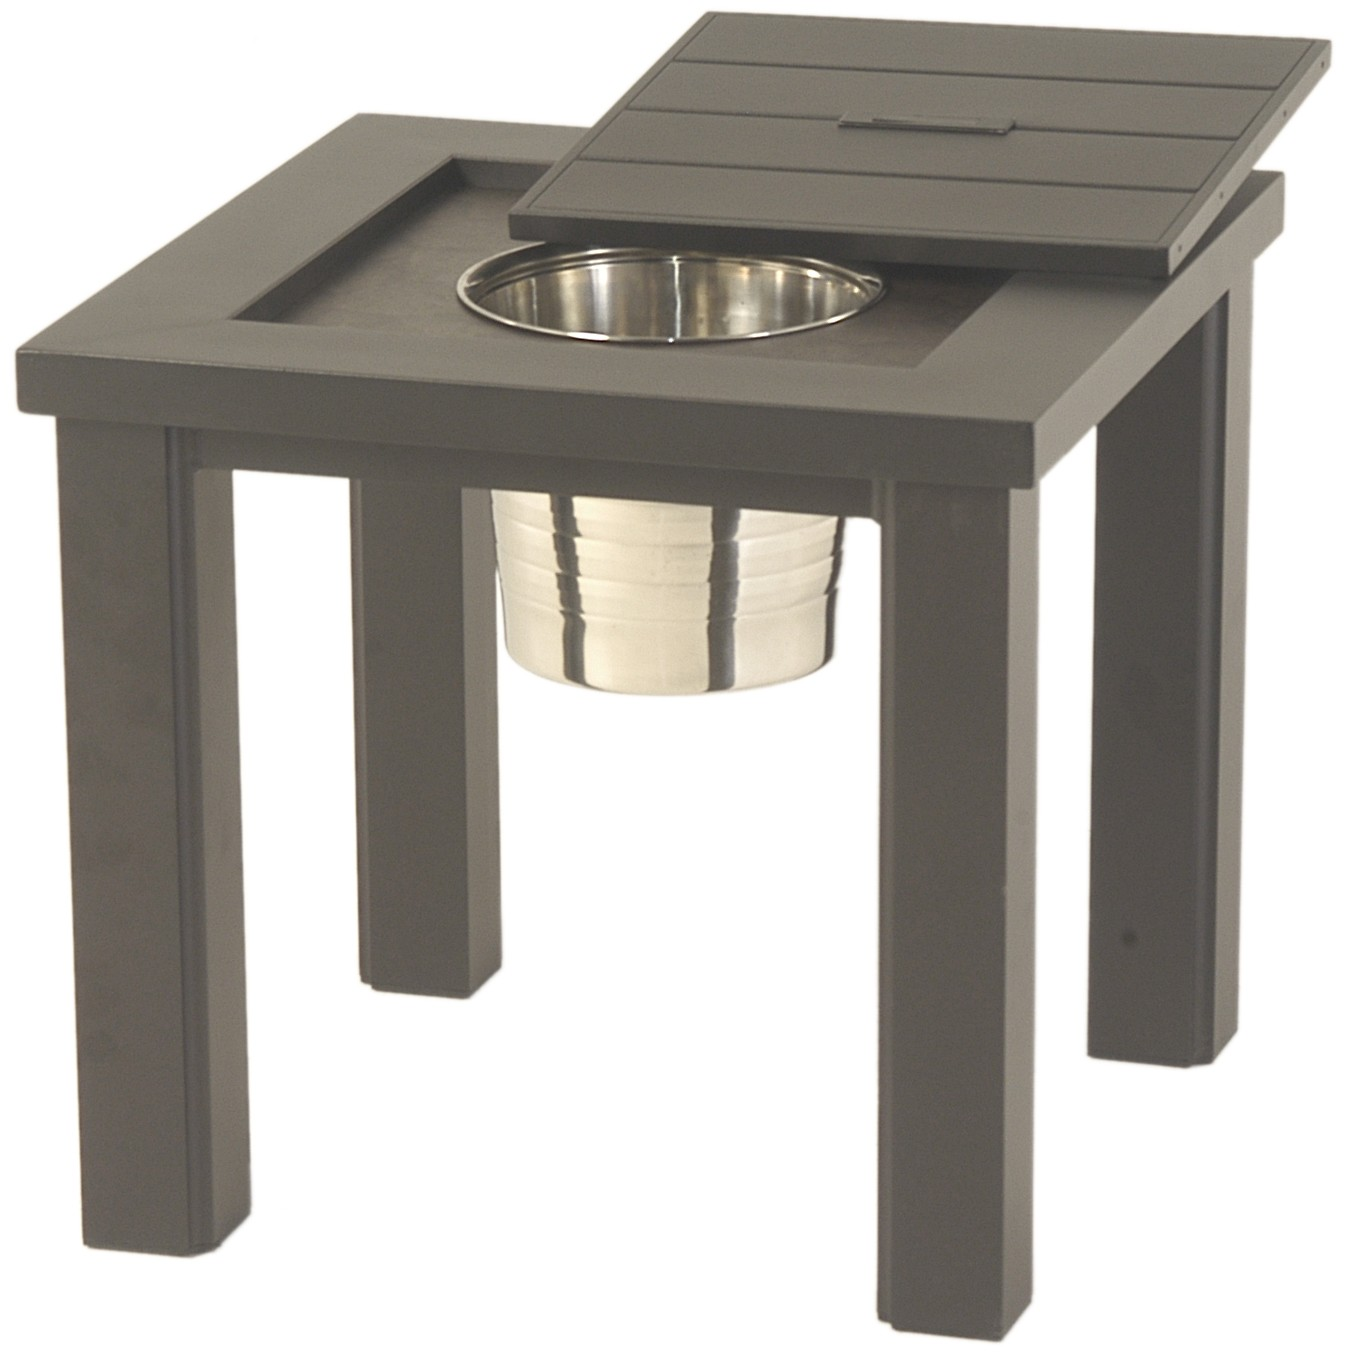 hanamint sherwood square ice bucket side table outdoor with small leather chair cool home decor high accent battery operated mini lamps black patio furniture mid century modern